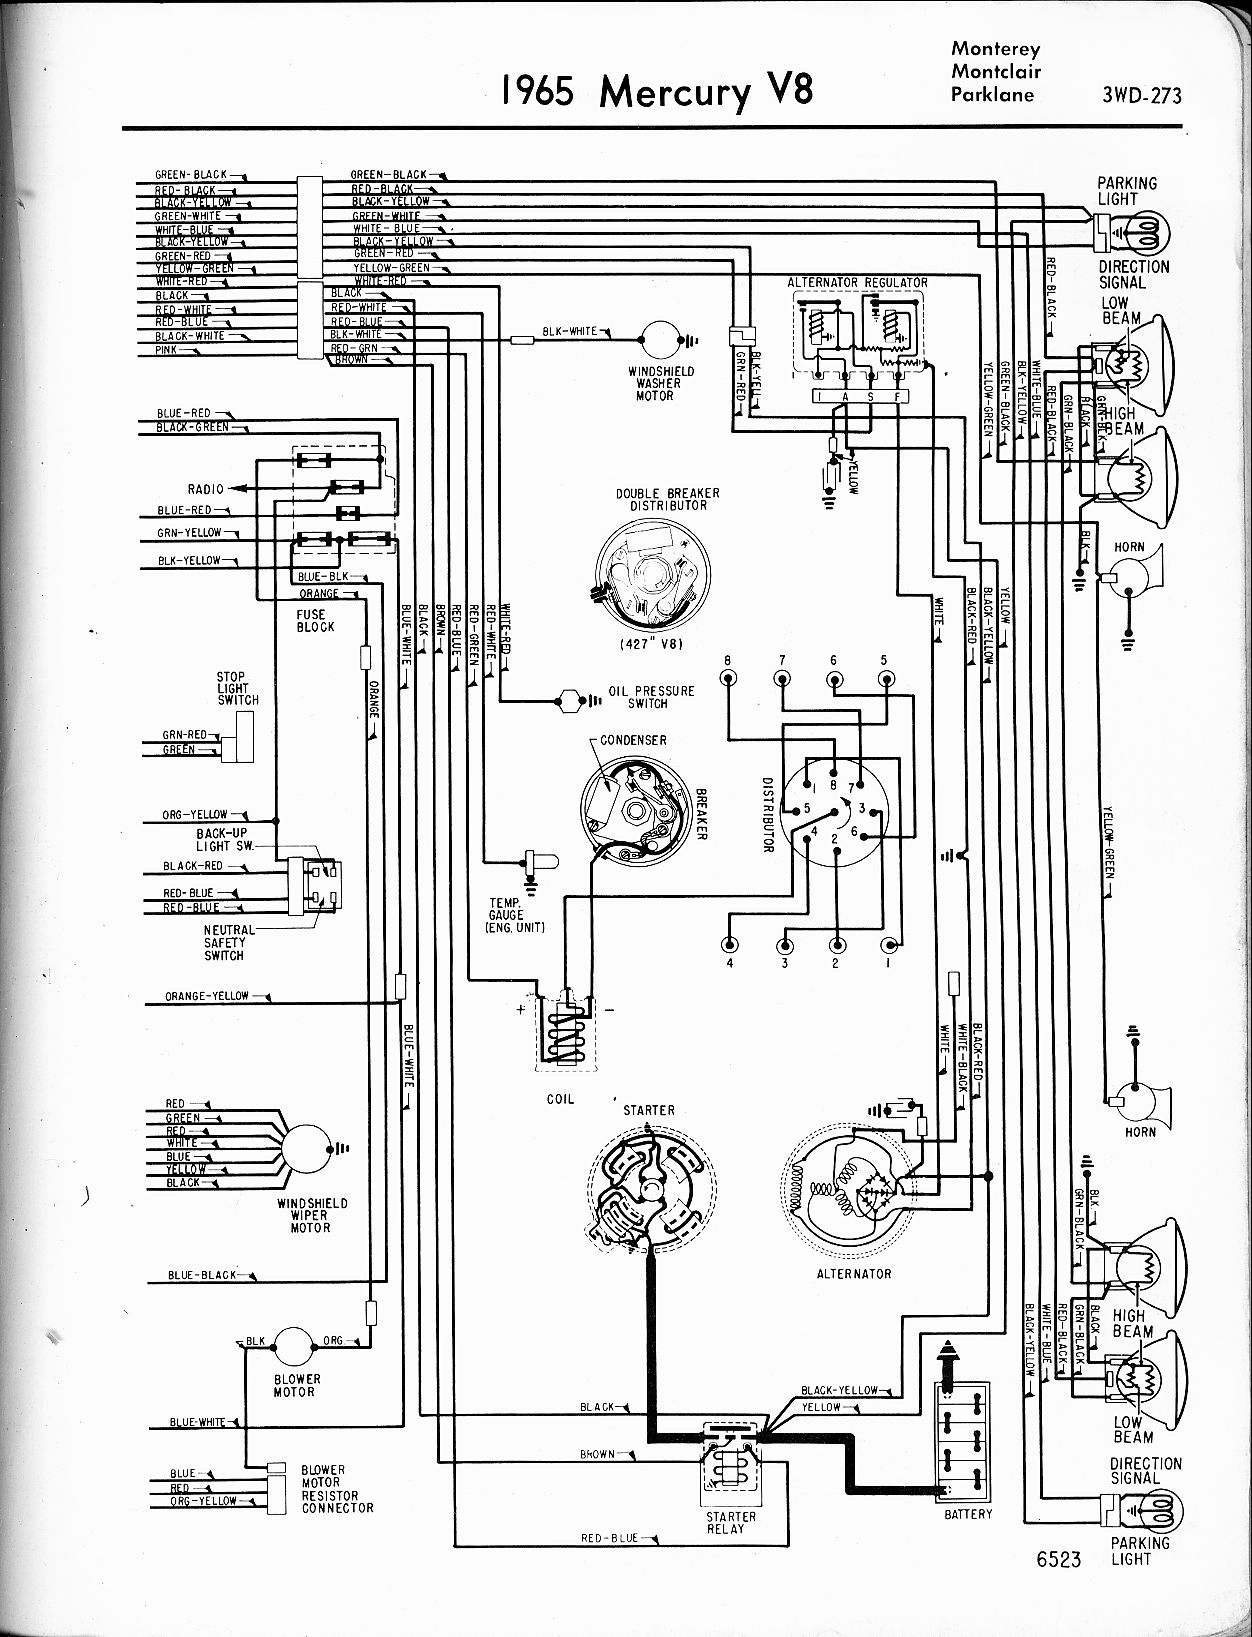 68 mercury cougar: wire diagram..the coil,water temp